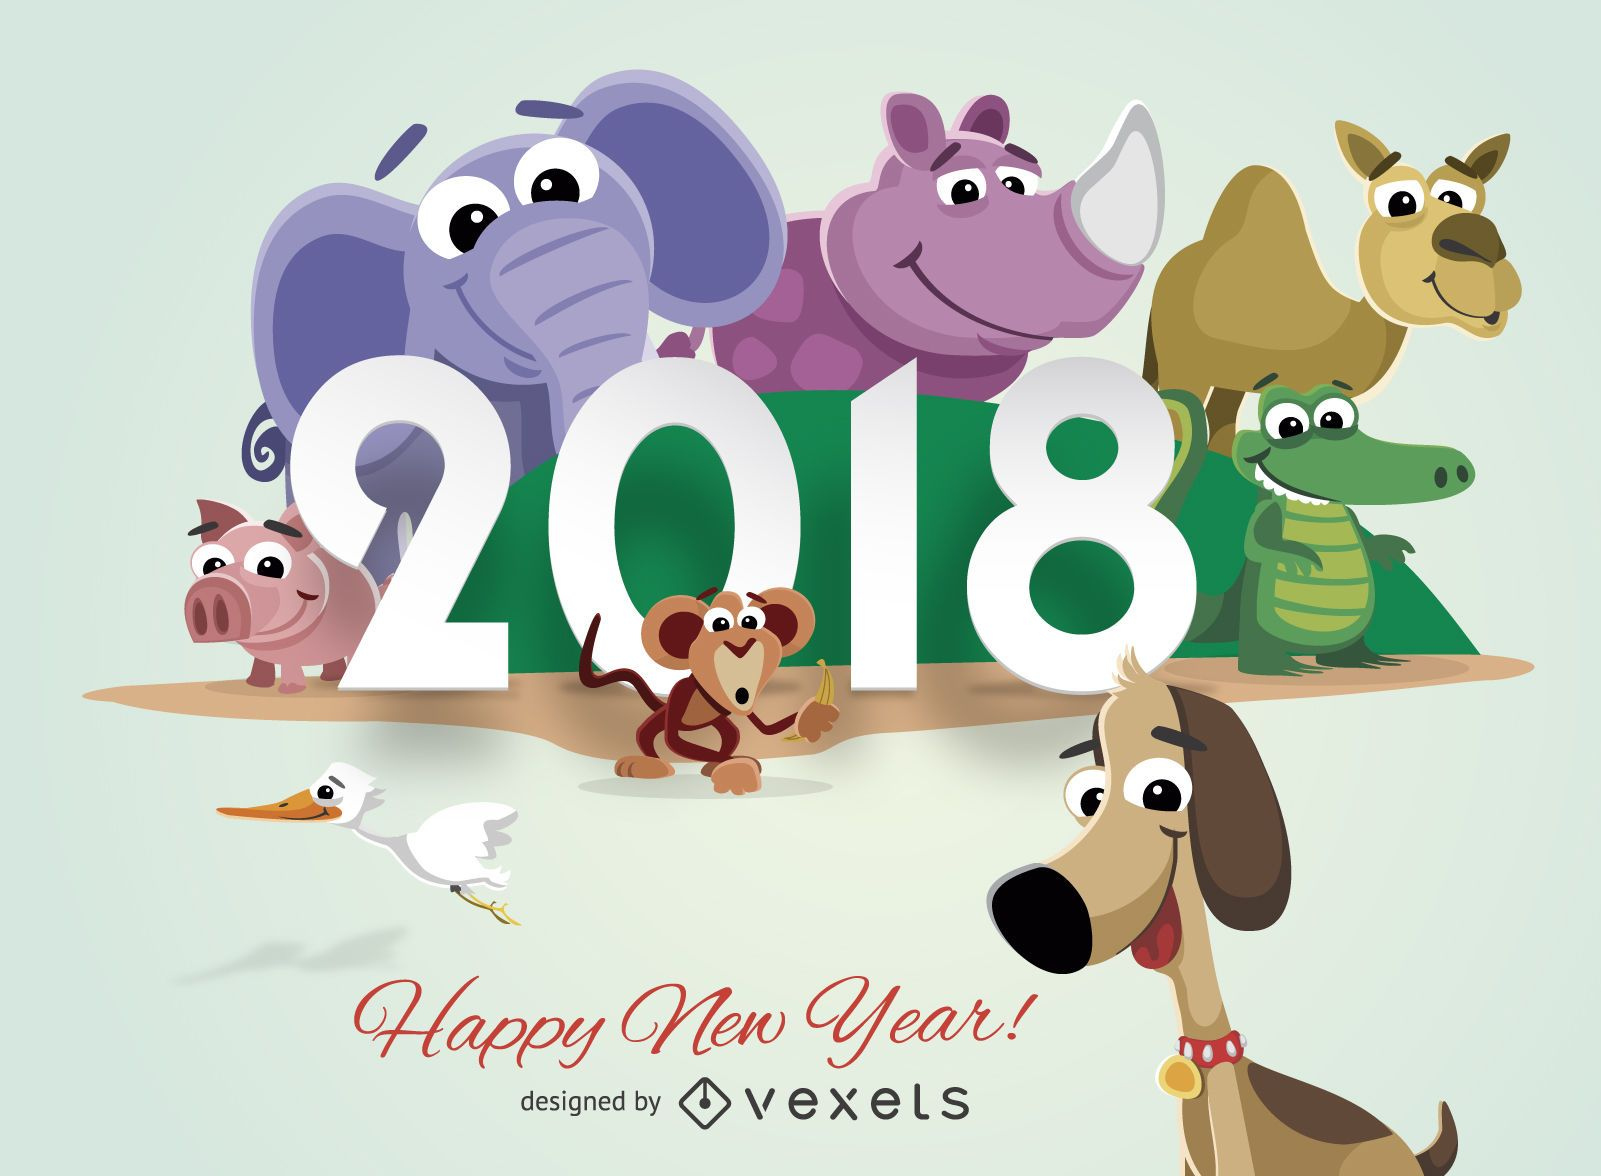 cartoon animals 2018 new year greeting card download large image 1601x1176px license image user